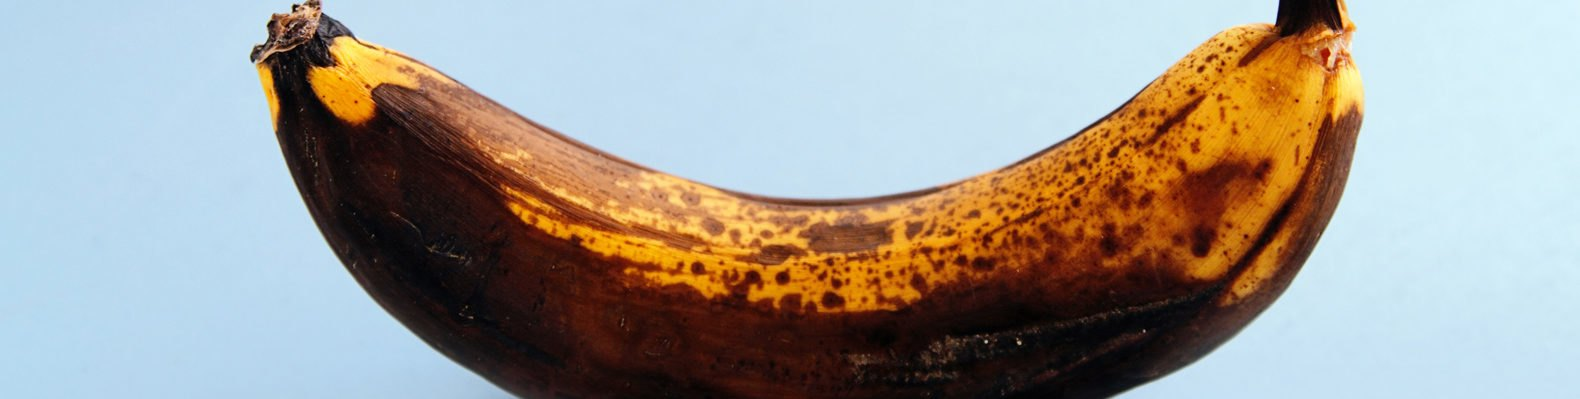 brown spotted banana on blue background